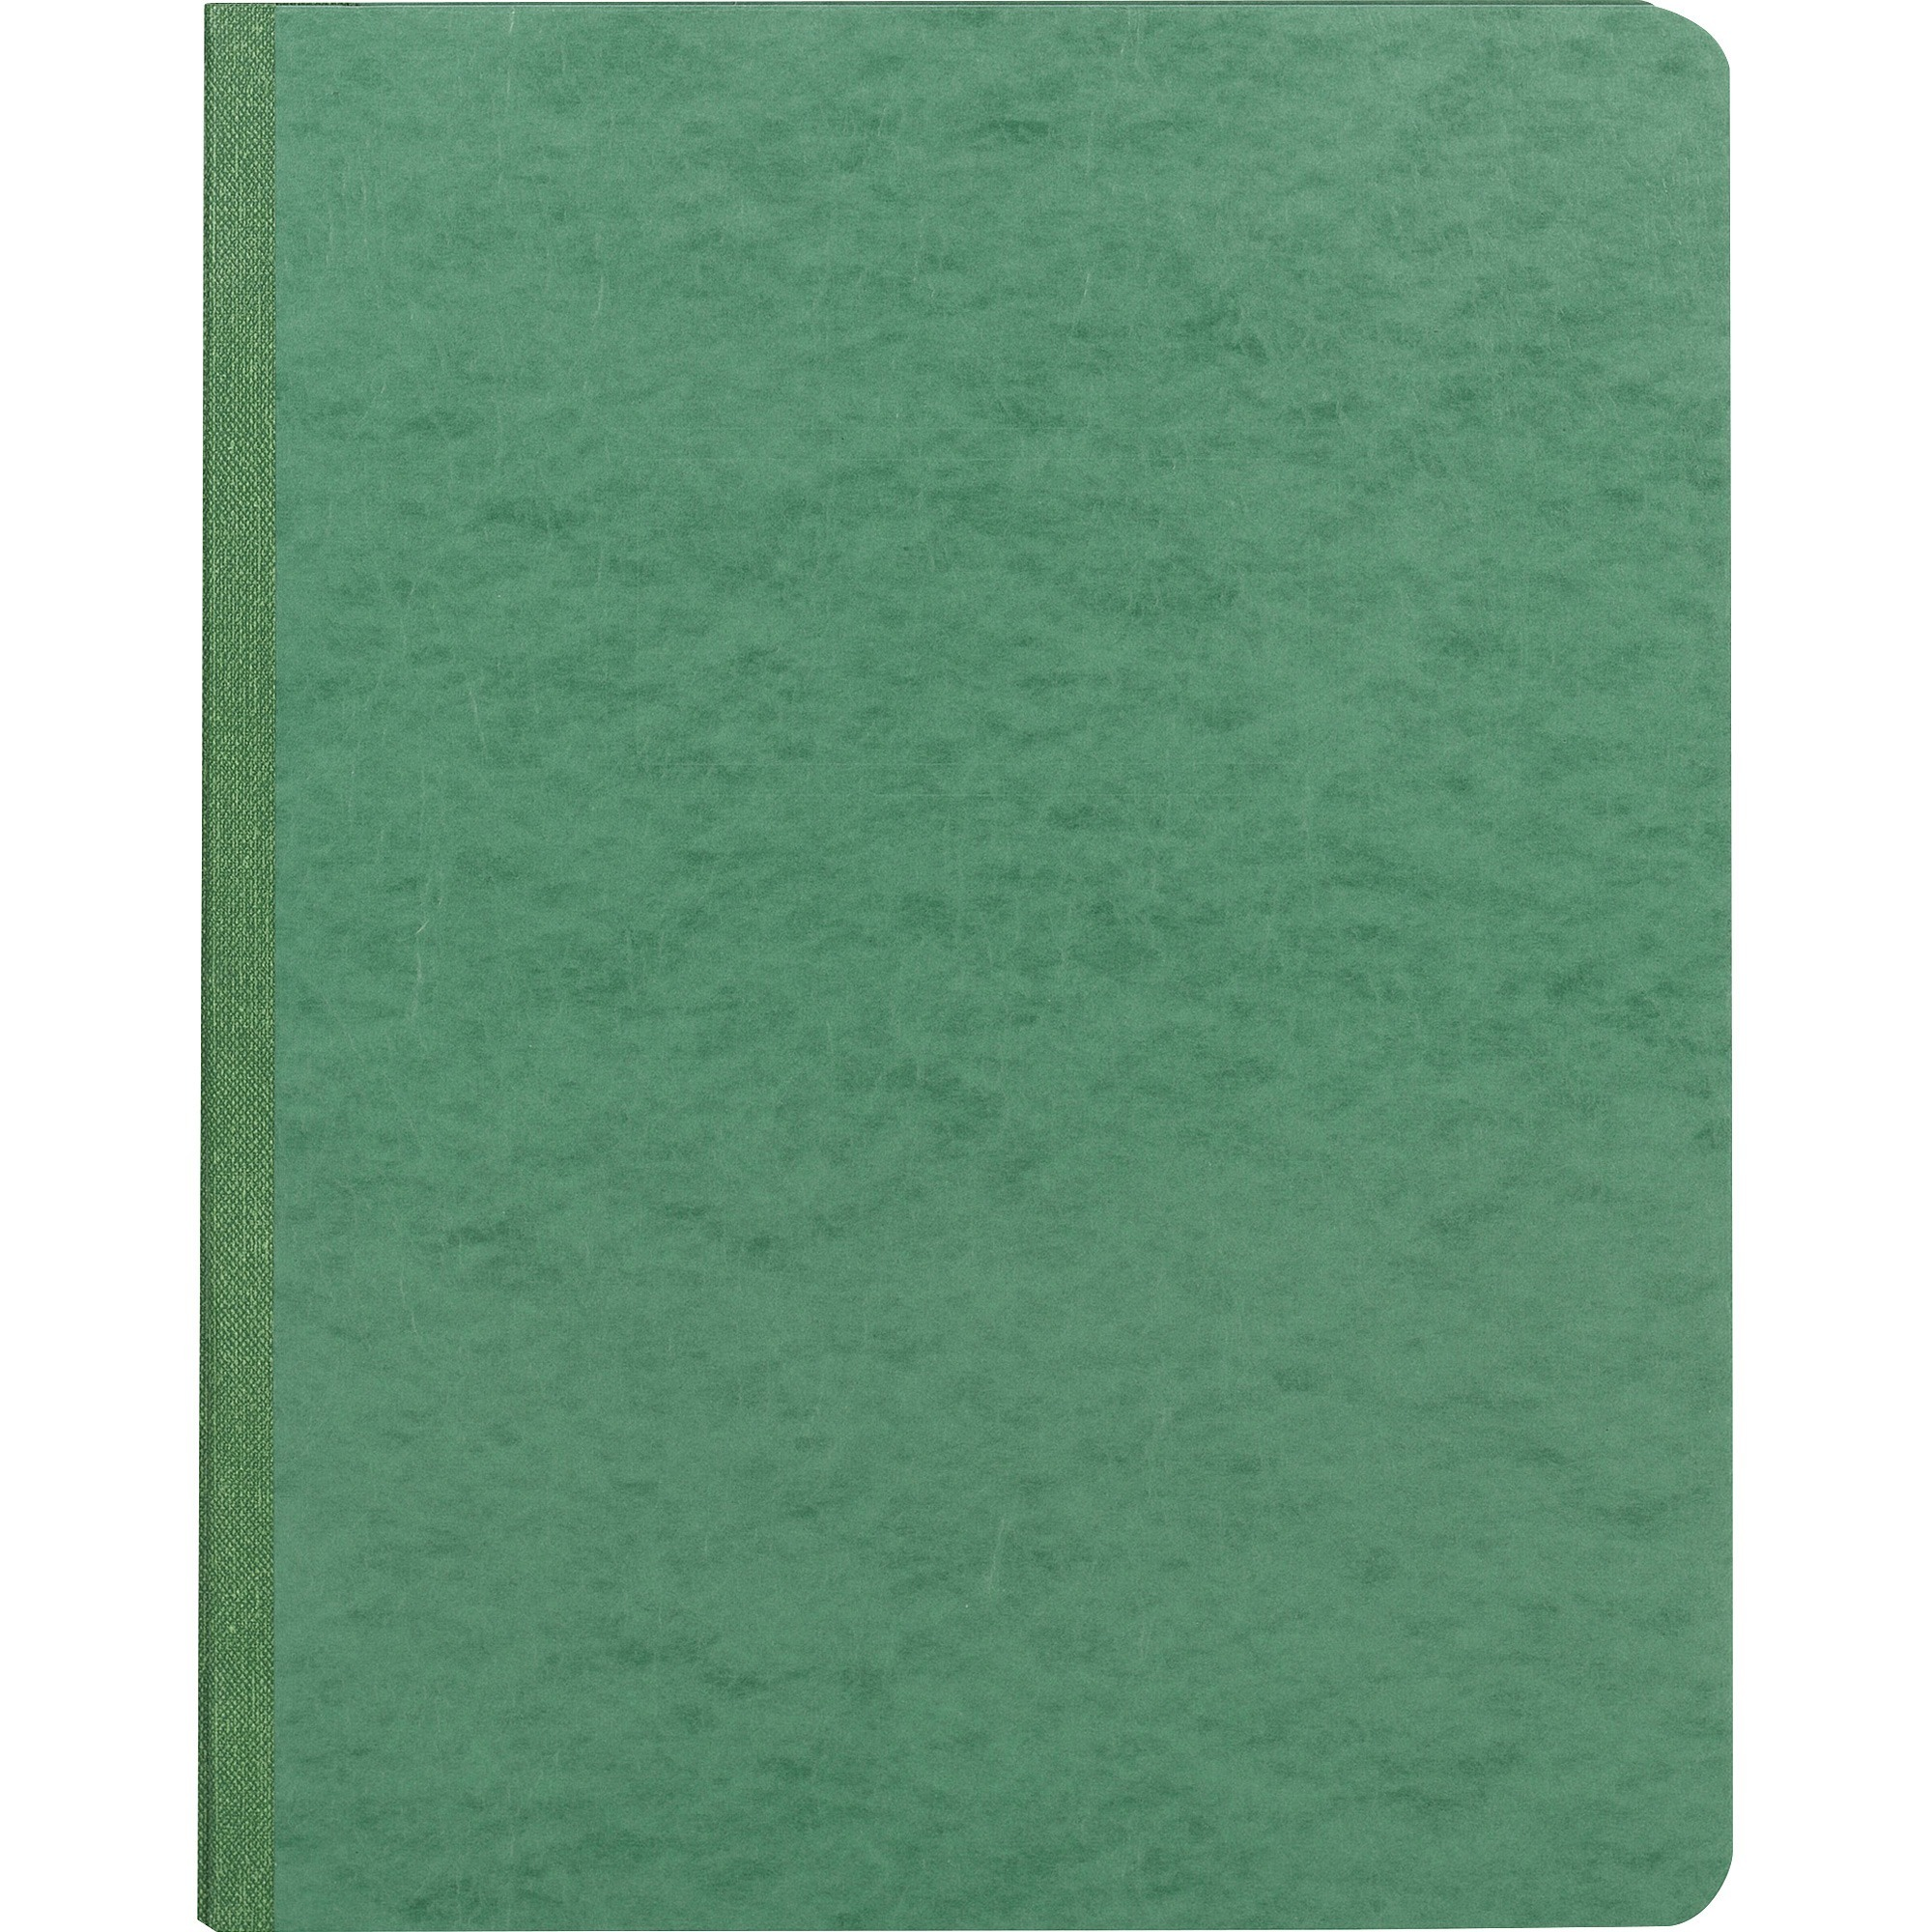 Smead, SMD81452, PressGuard Side Edge Letter Report Covers, 1 Each, Green